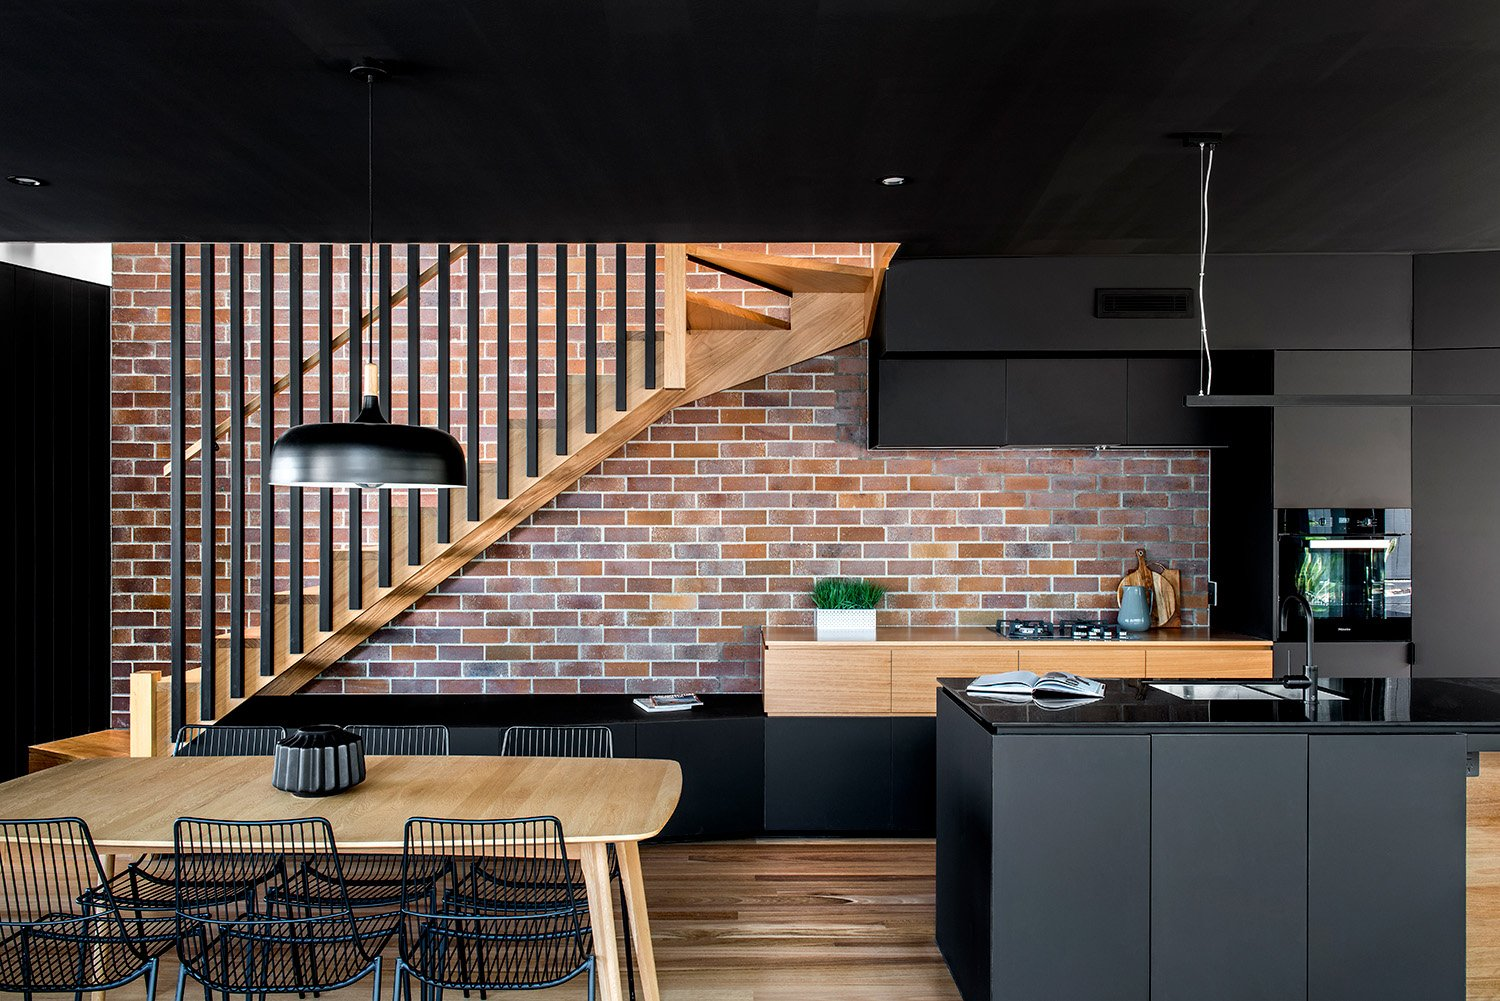 Brick, timber and dark kitchen cabinetry Cathy Schusler